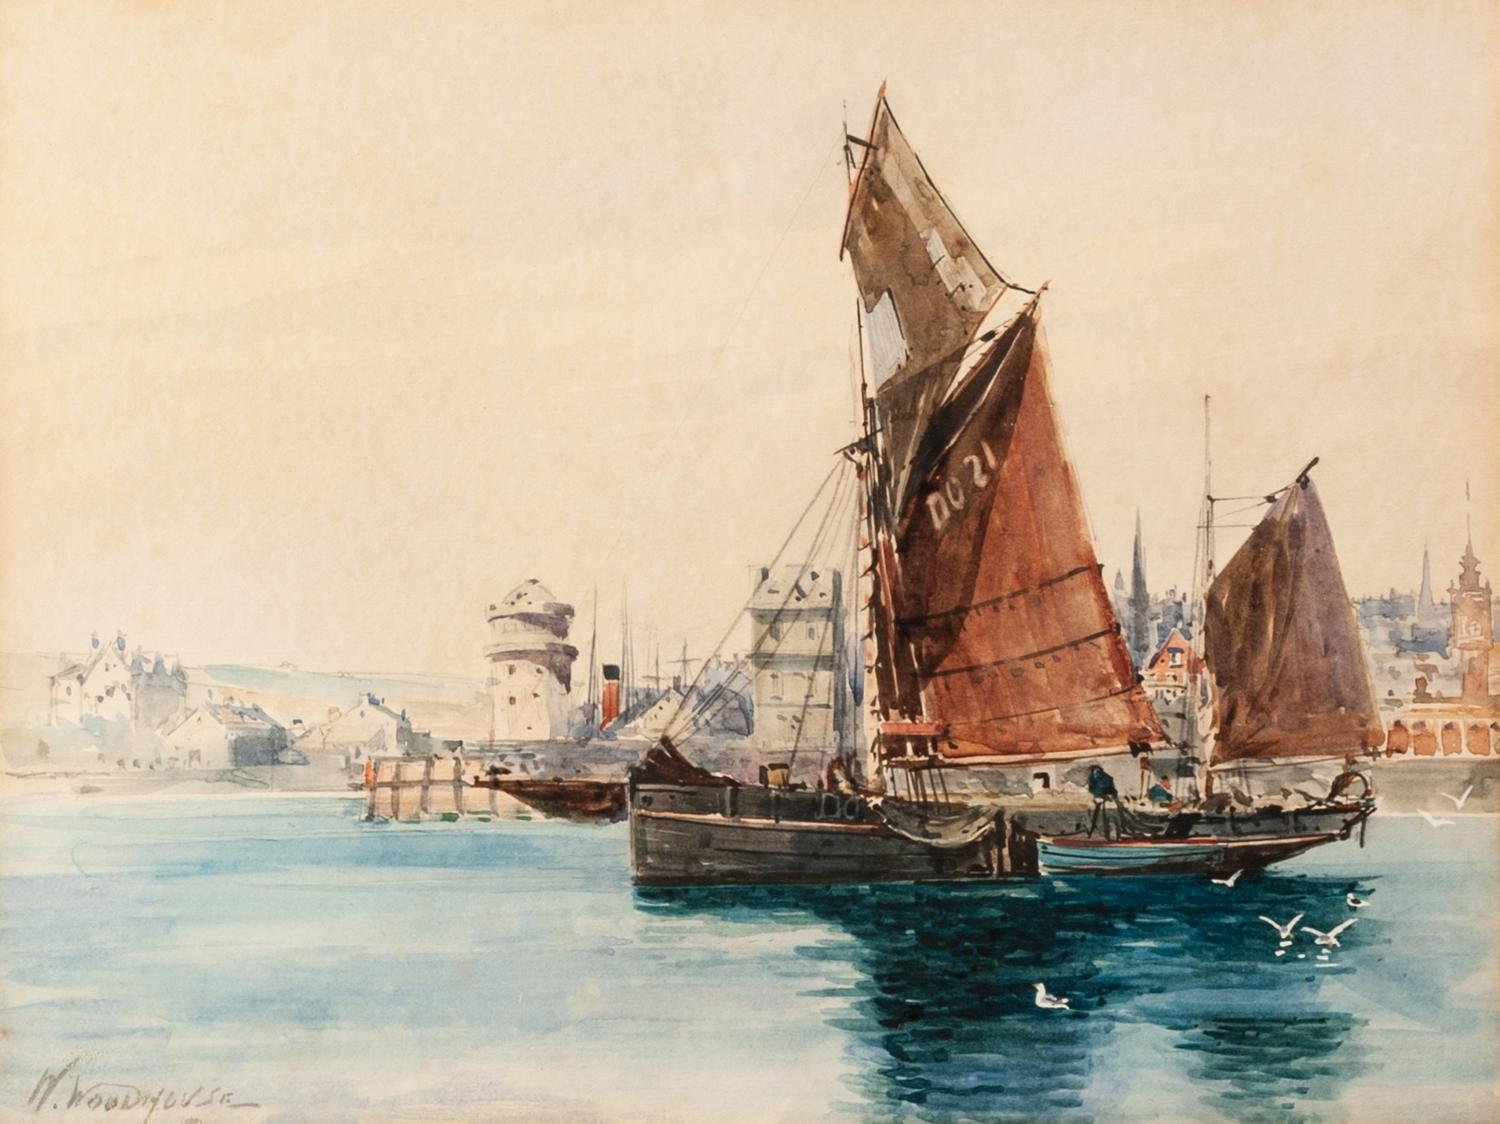 Lot 168 - WILLIAM WOODHOUSE (1857 - 1935) Watercolour Entrance to a harbour on the Isle of man Signed lower